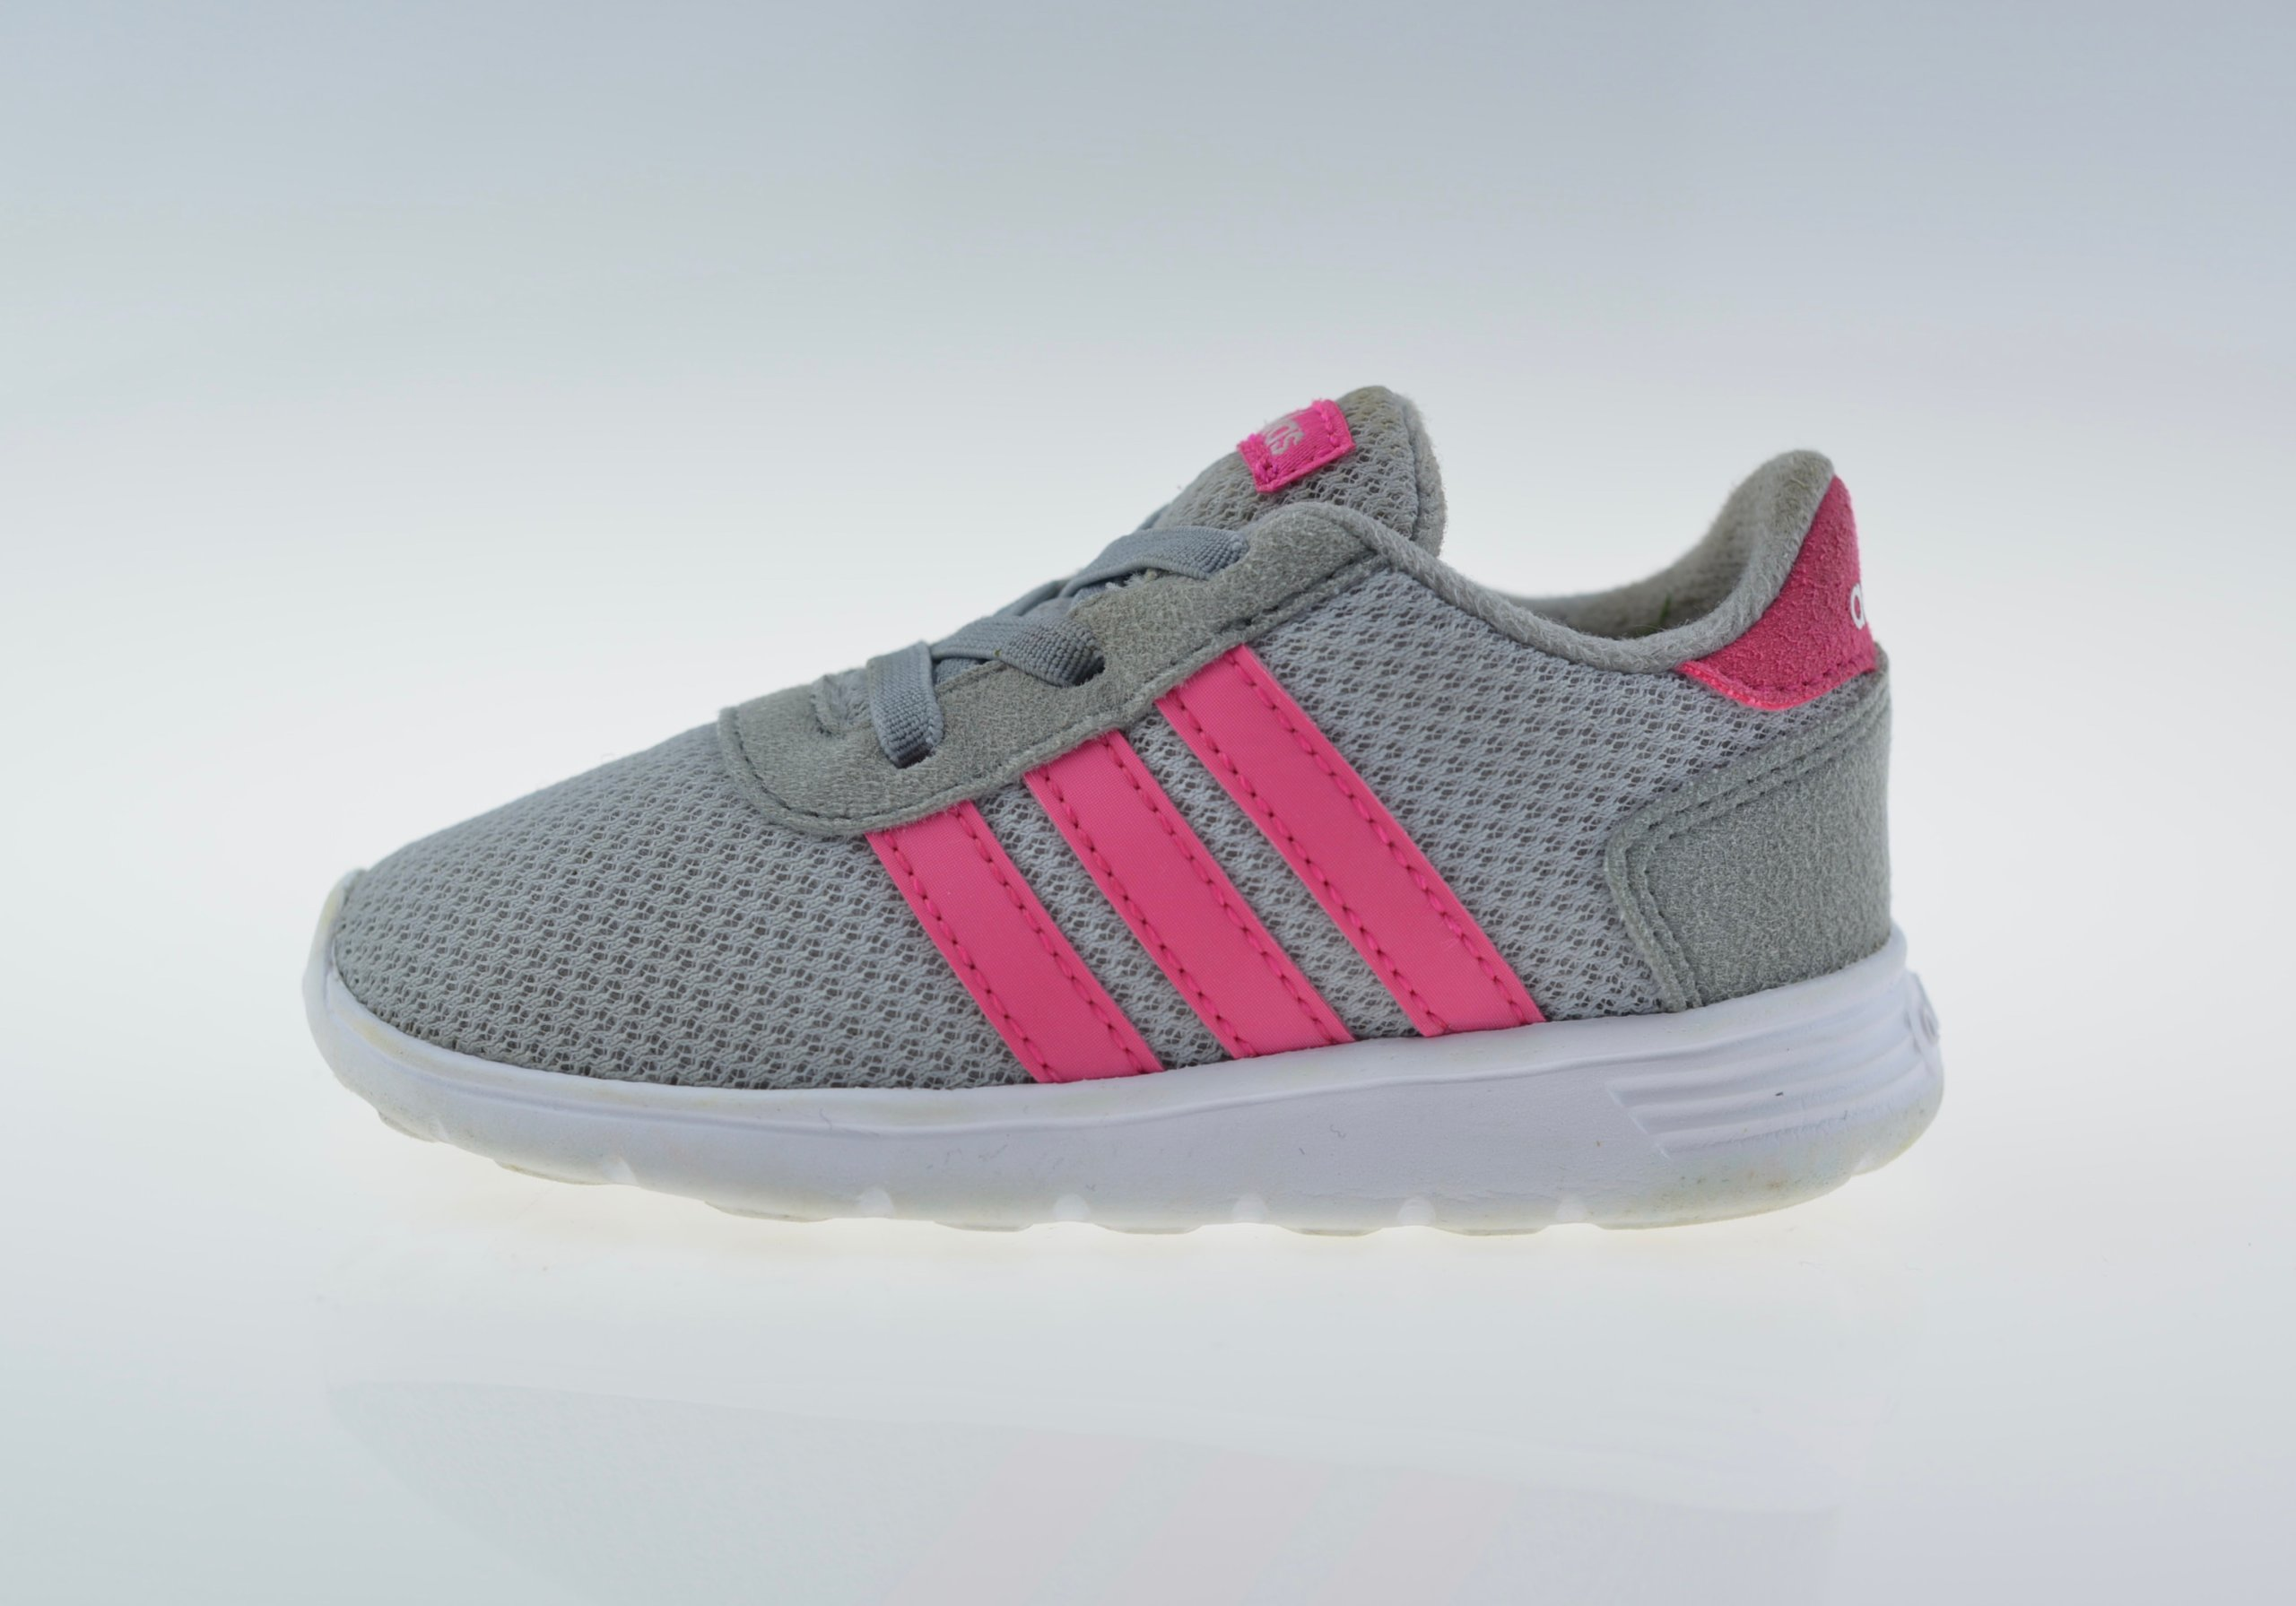 free shipping adidas neo label lite racer damskie 5b425 44d4a